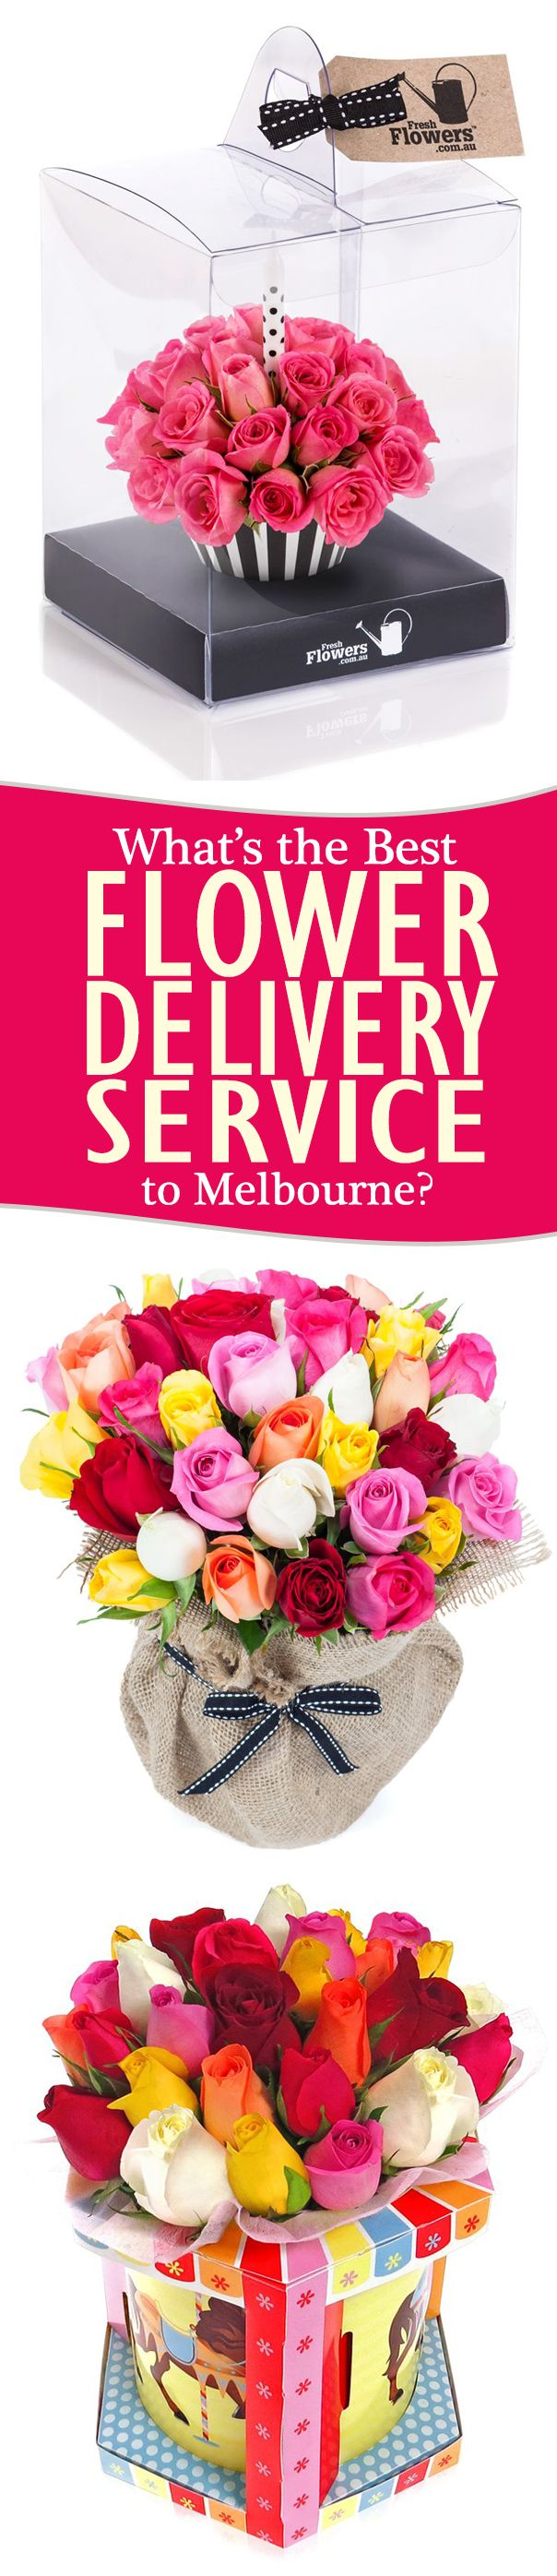 My Wife Makes's Review: What's the best online flower delivery service to Melbourne? #flower #online #flowerdelivery #love #beautiful #romantic #australia #melbourne